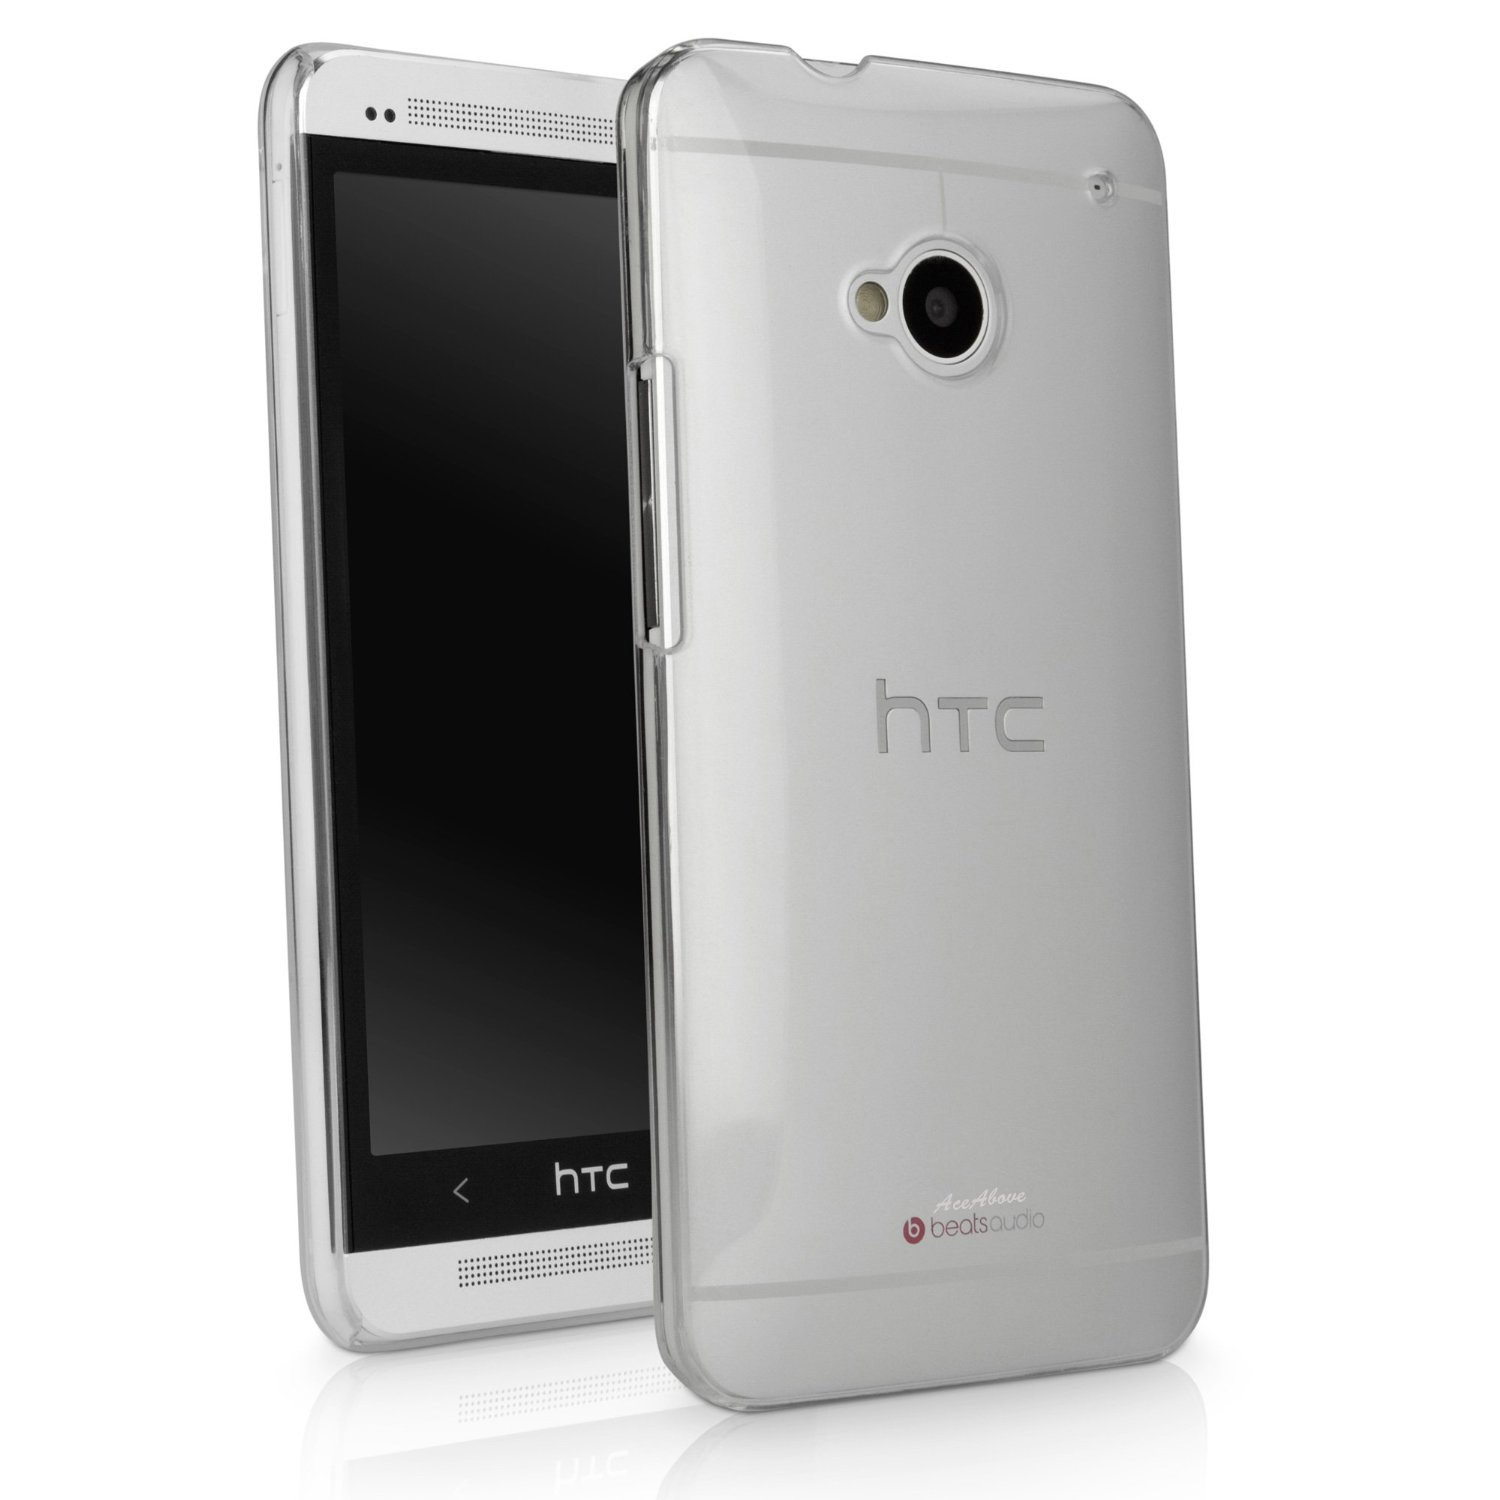 AceAbove HTC One M7 Case Slim-Fit Ultra Lightweight Polycarbonate Hard Shell Cover for New HTC One $4.95